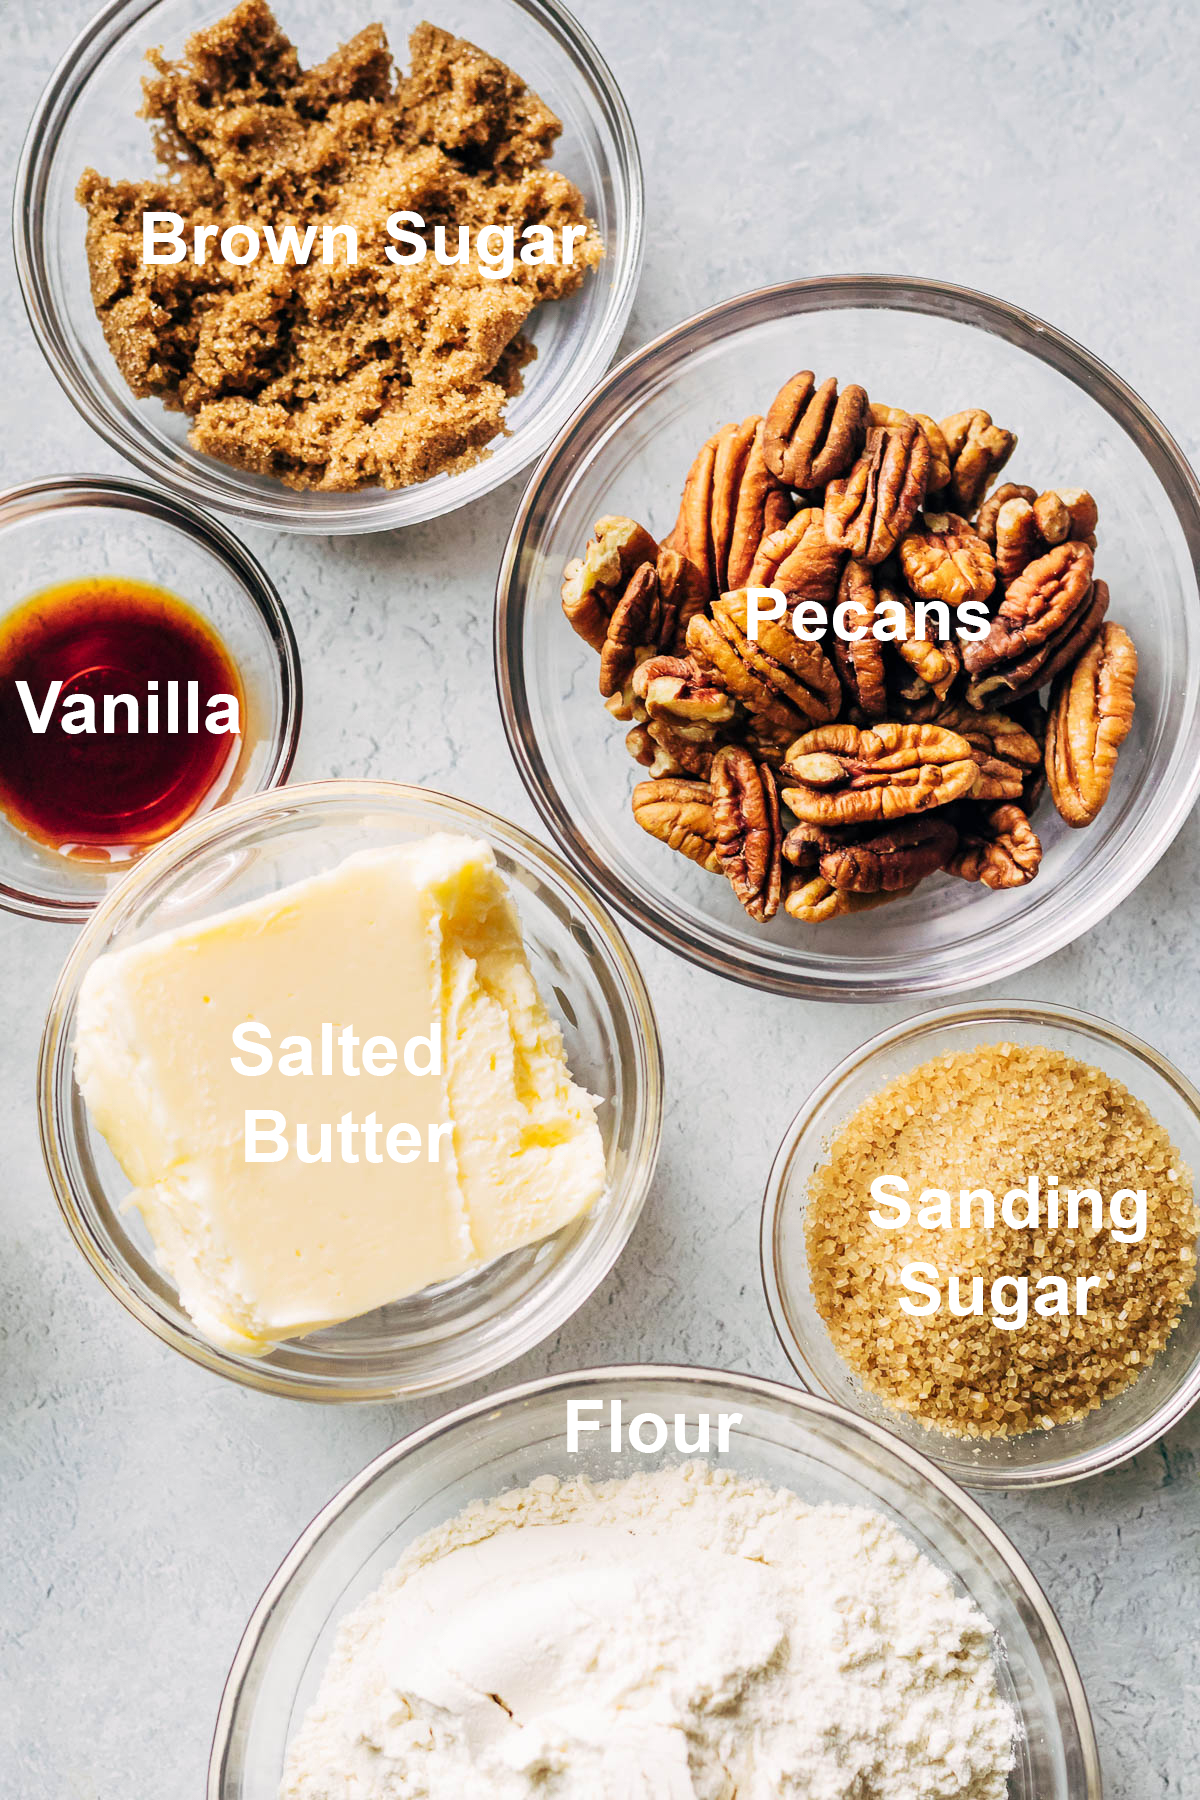 Ingredients to make pecan shortbread cookies.